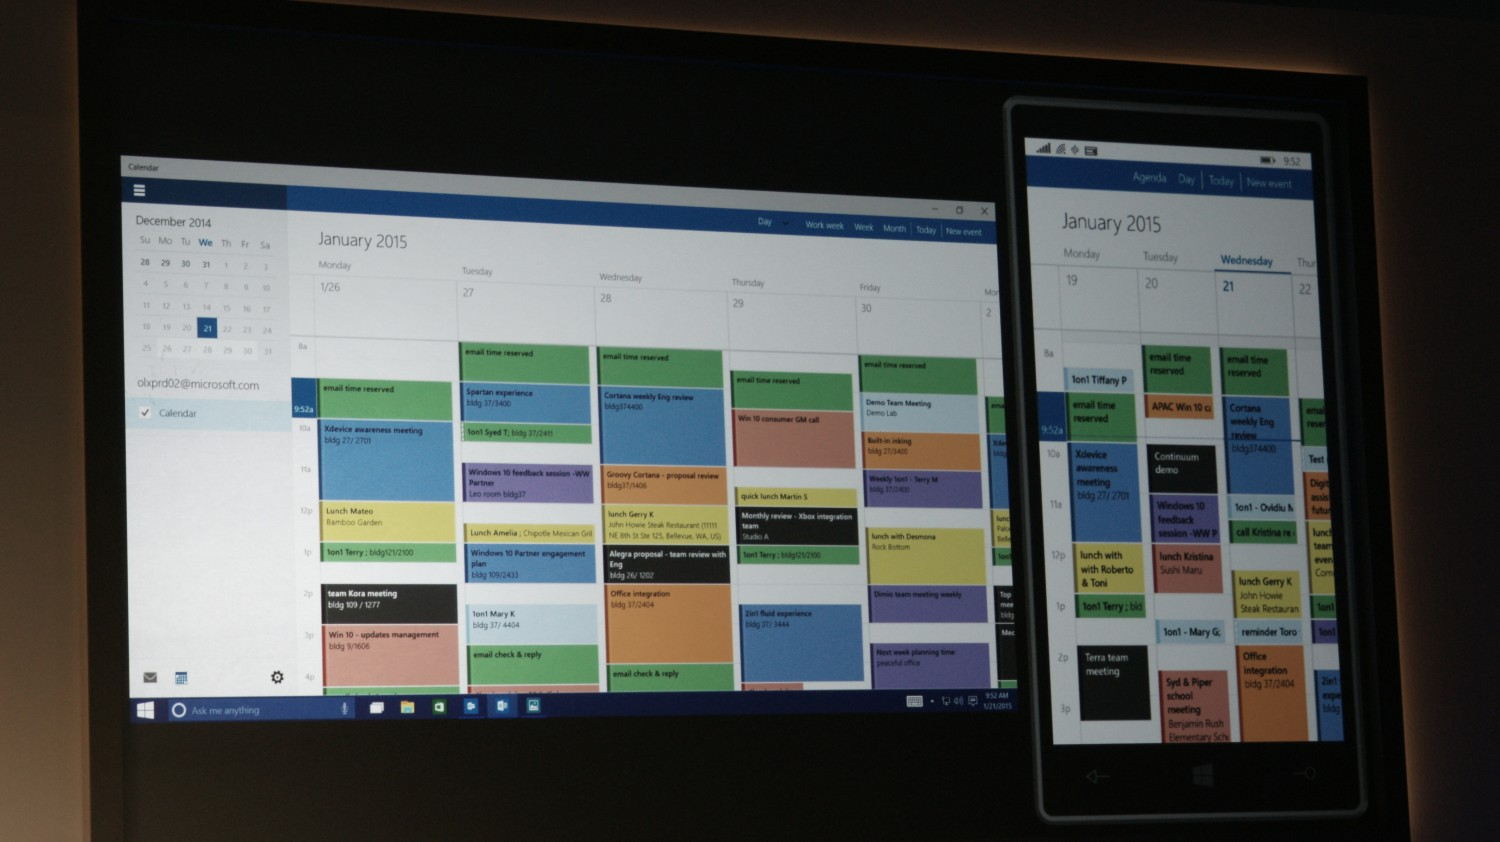 Wallpaper Calendar Version Unlock Code : Windows apps are now the same on desktop and mobile